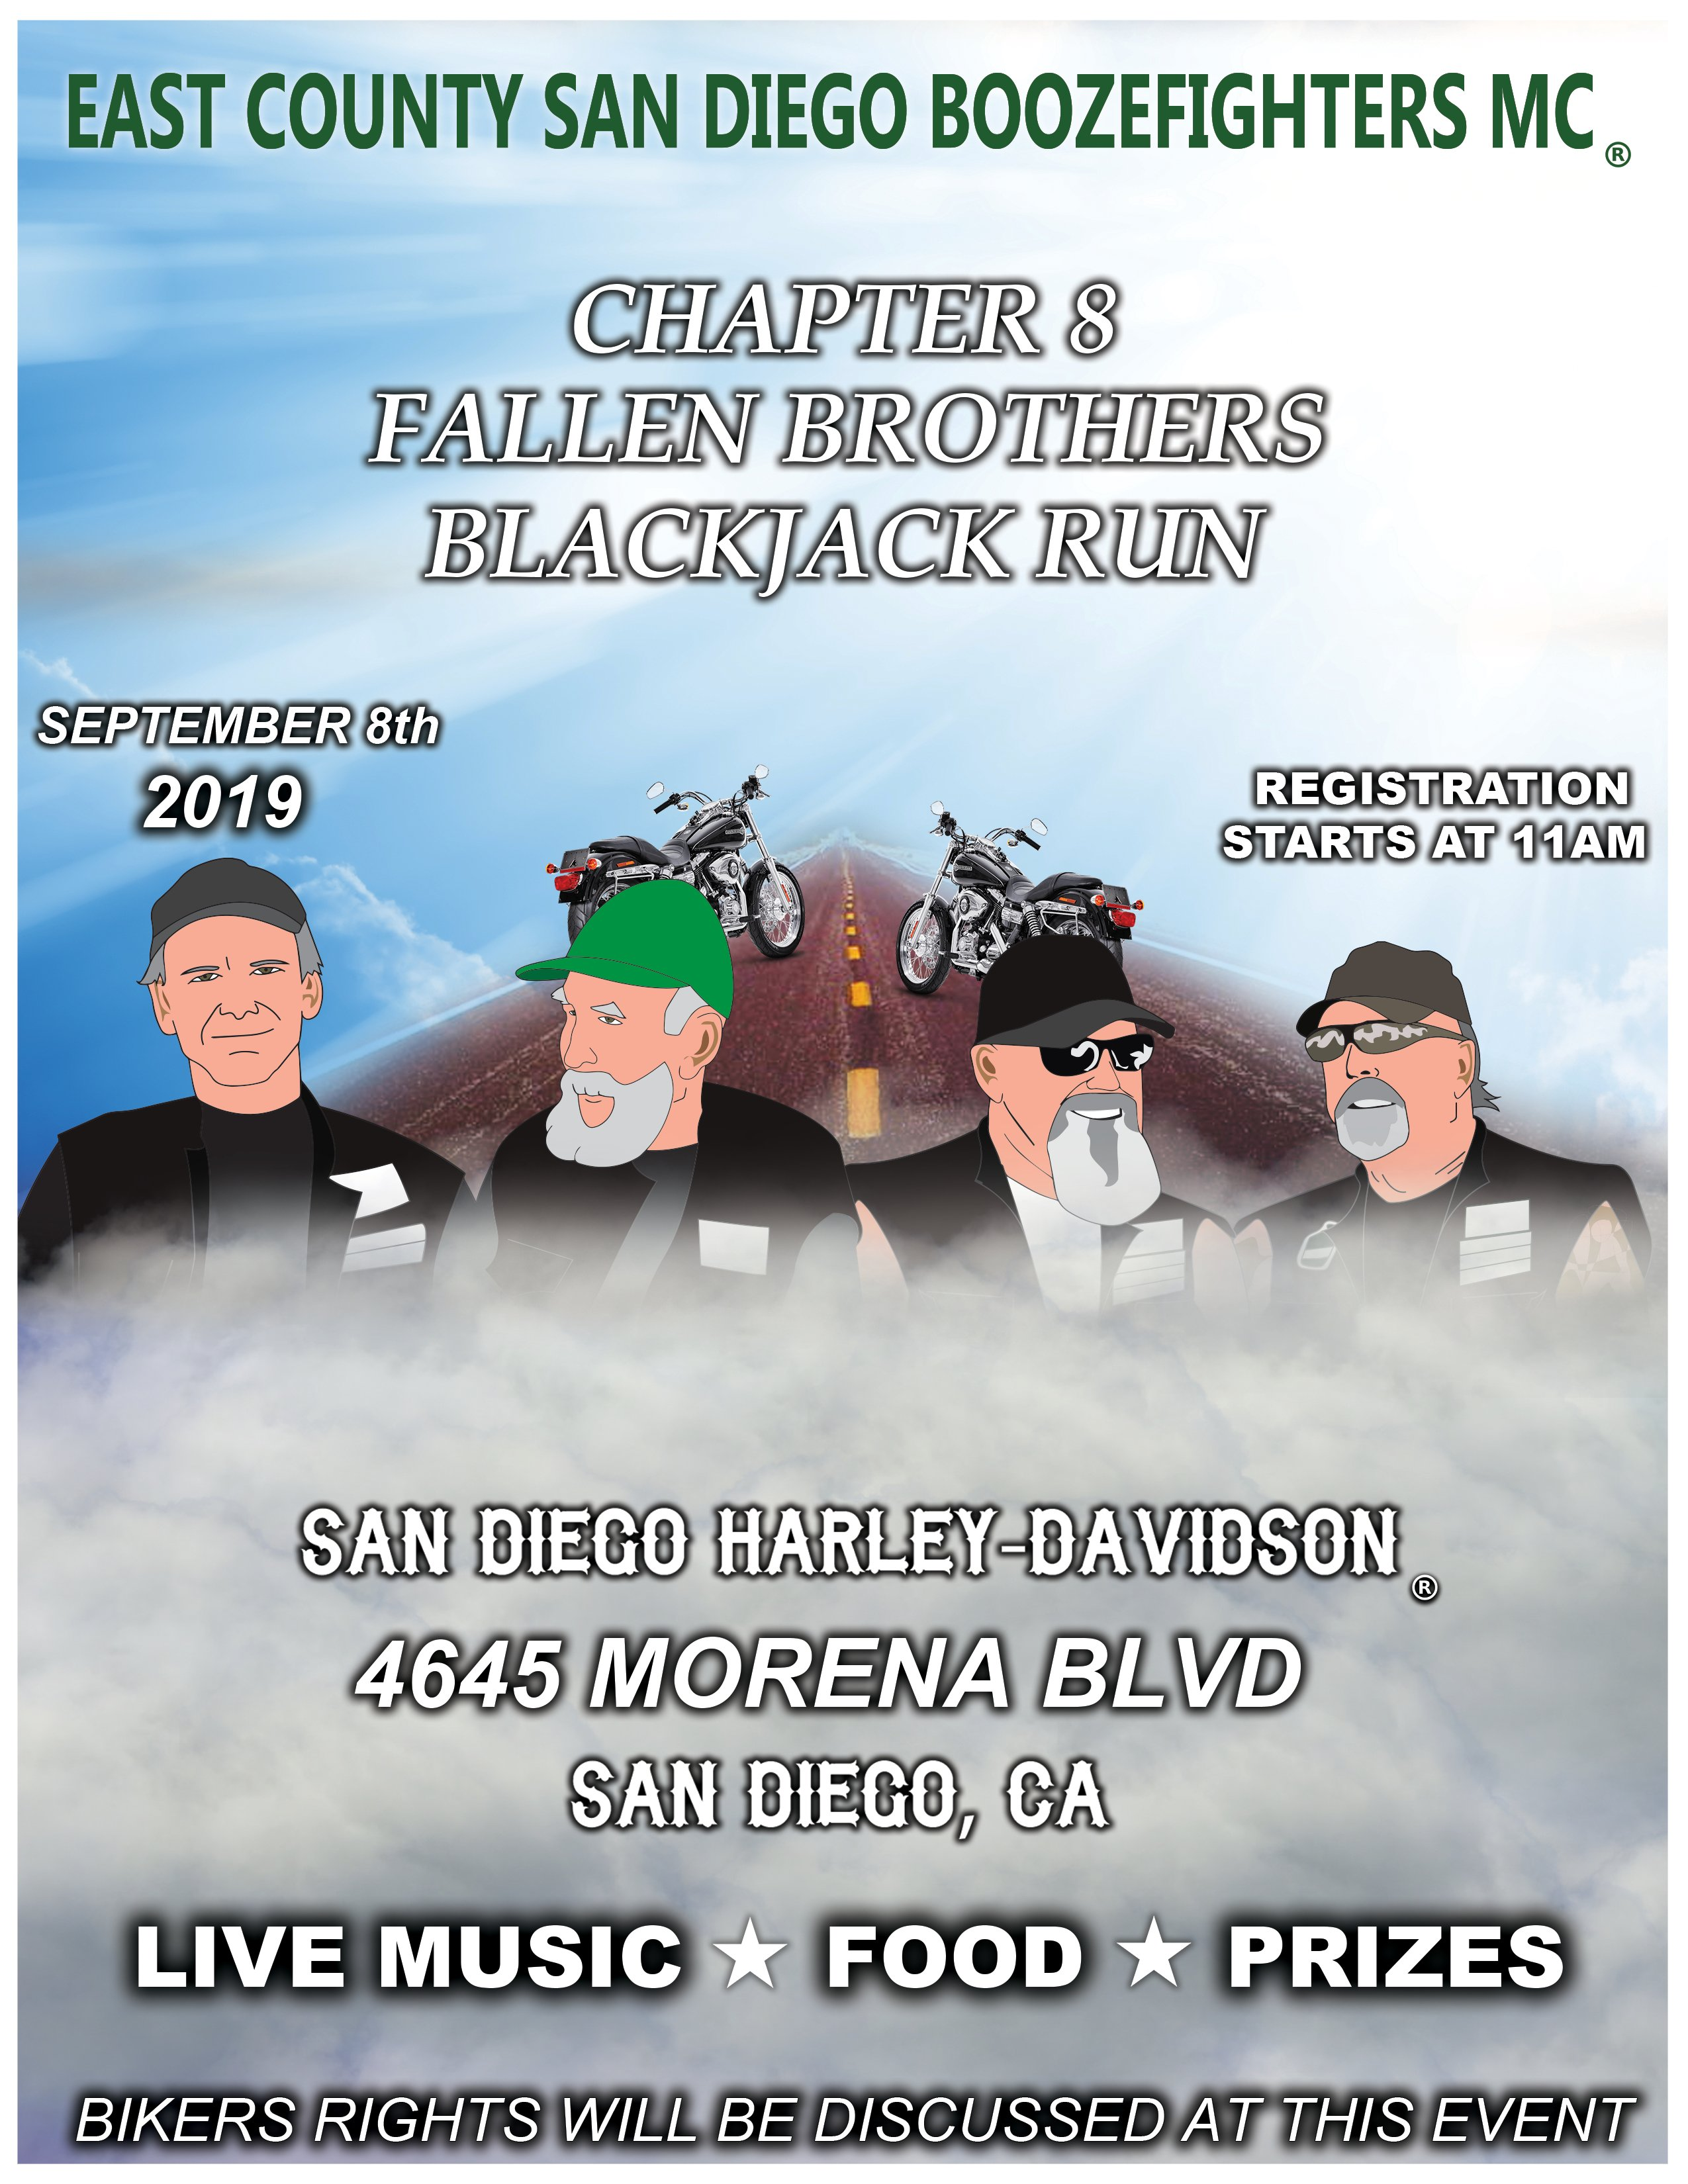 East County Boozfighters MC Fallen Brothers Run